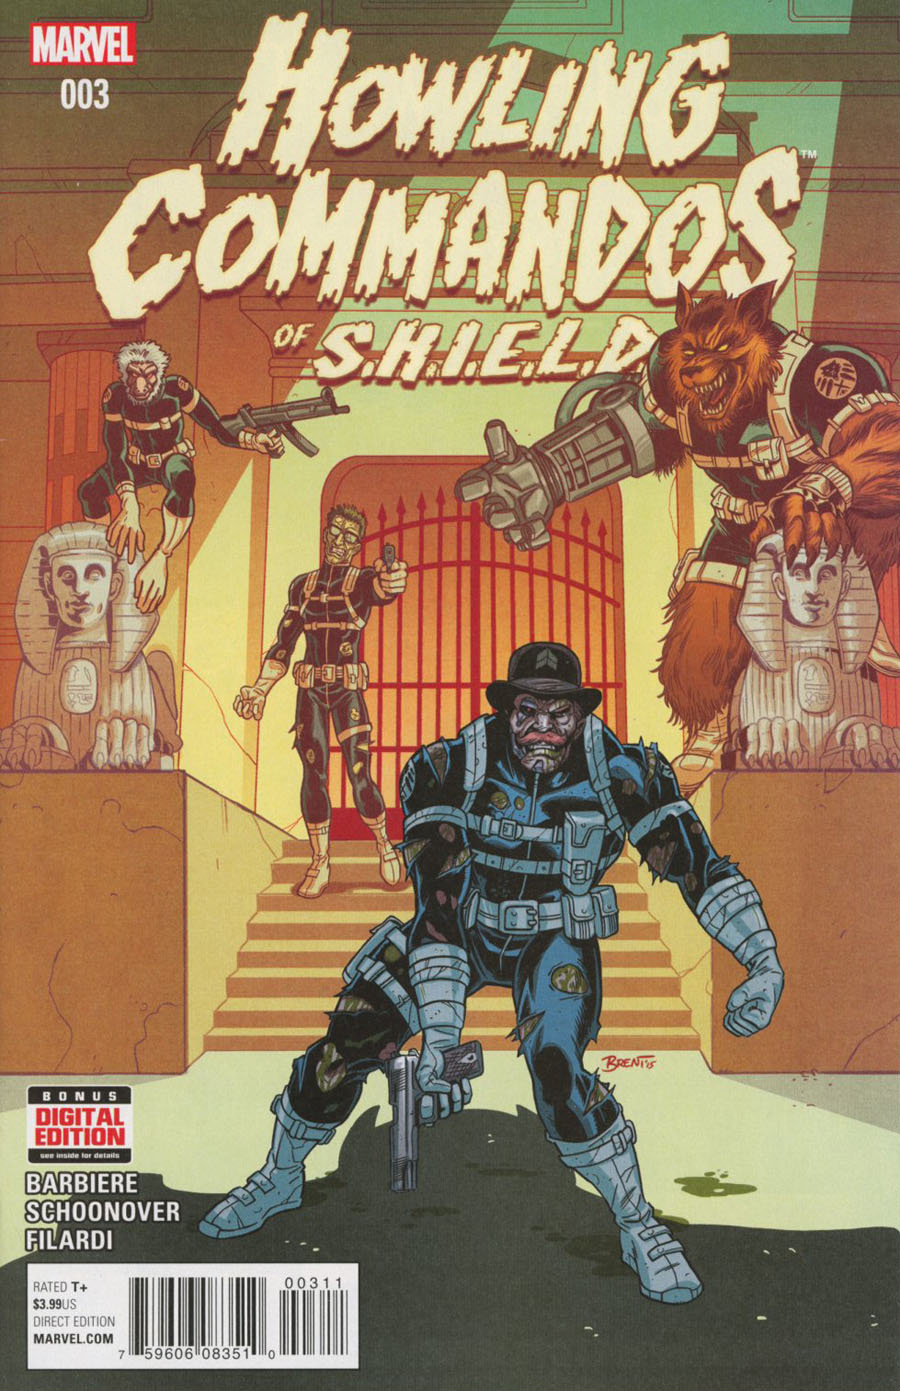 Howling Commandos Of S.H.I.E.L.D. #3 Cover A Regular Brent Schoonover Cover